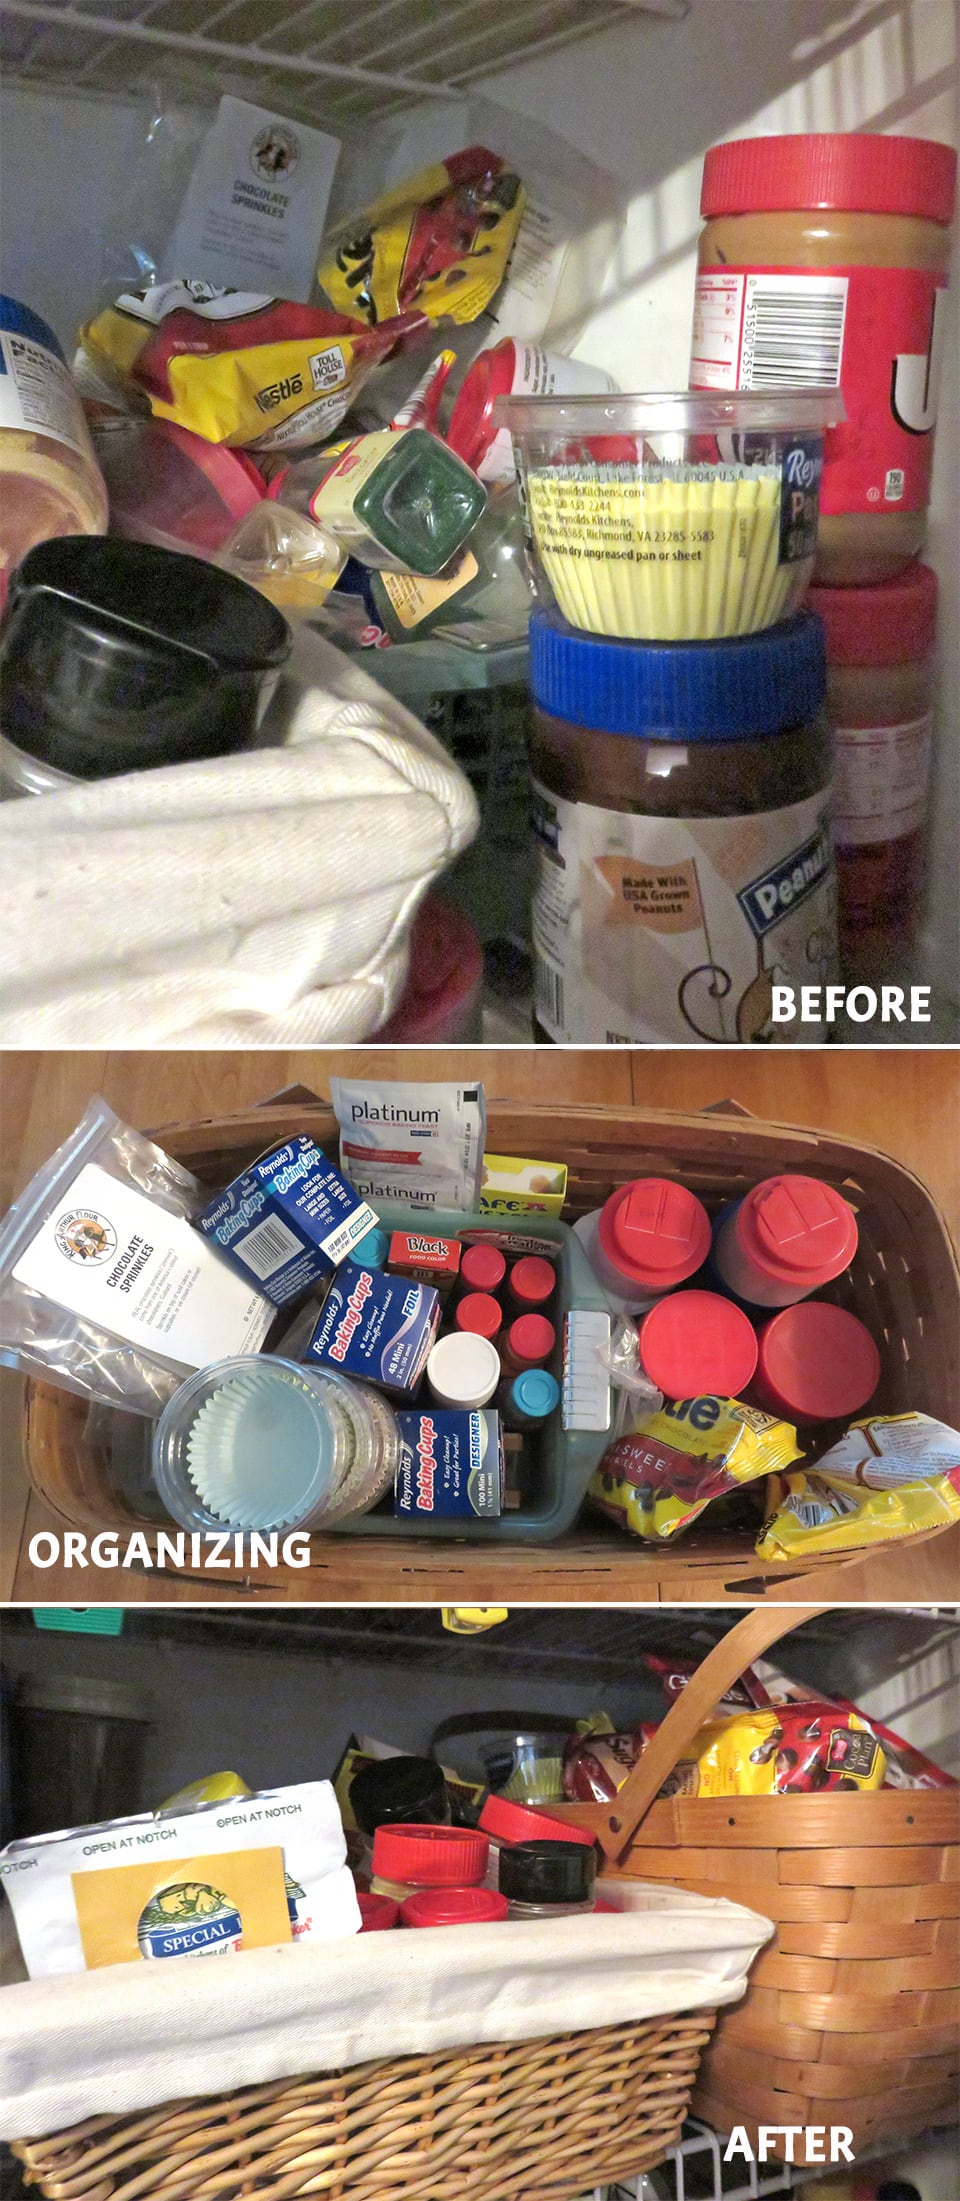 The REAL SIMPLE Method to Organizing Every Room: And How to Keep It that Way Review